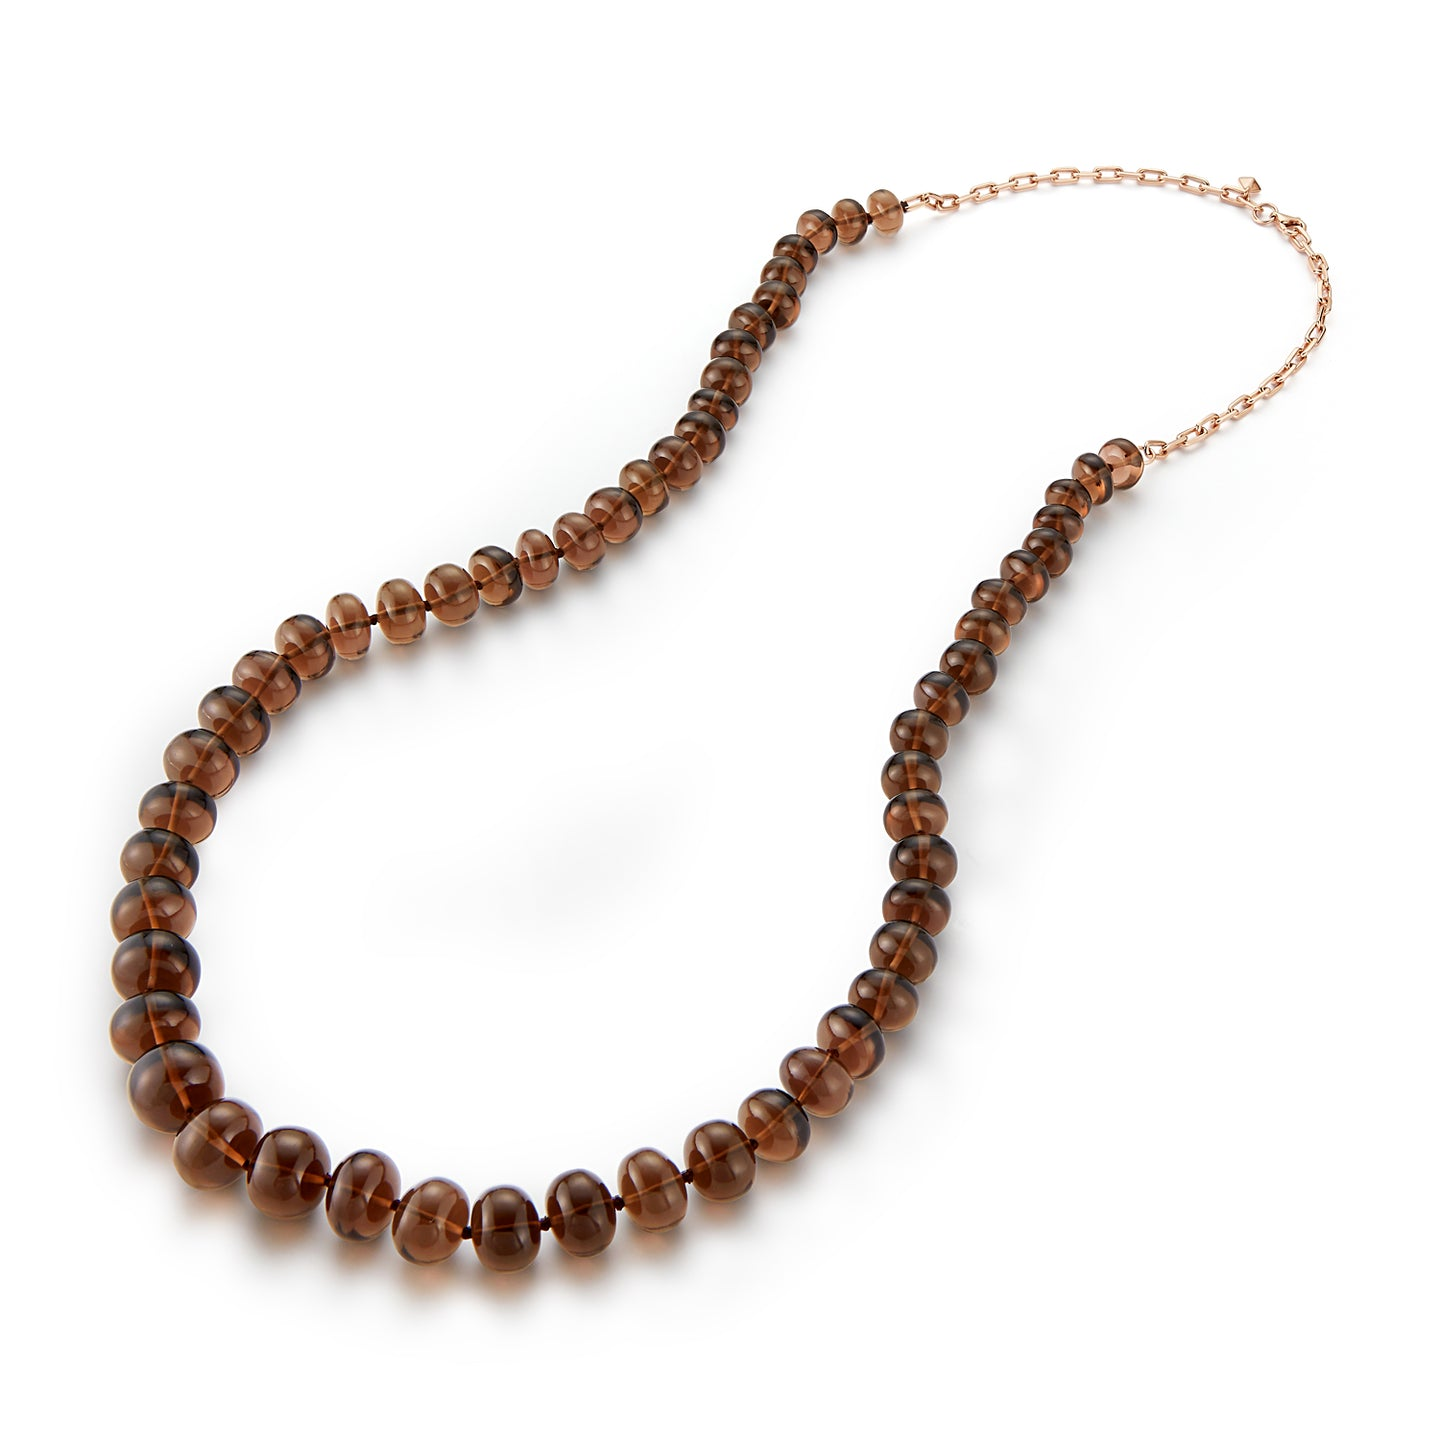 SAXON ONE OF A KIND 18K CHAIN AND SMOKY TOPAZ BEAD NECKLACE